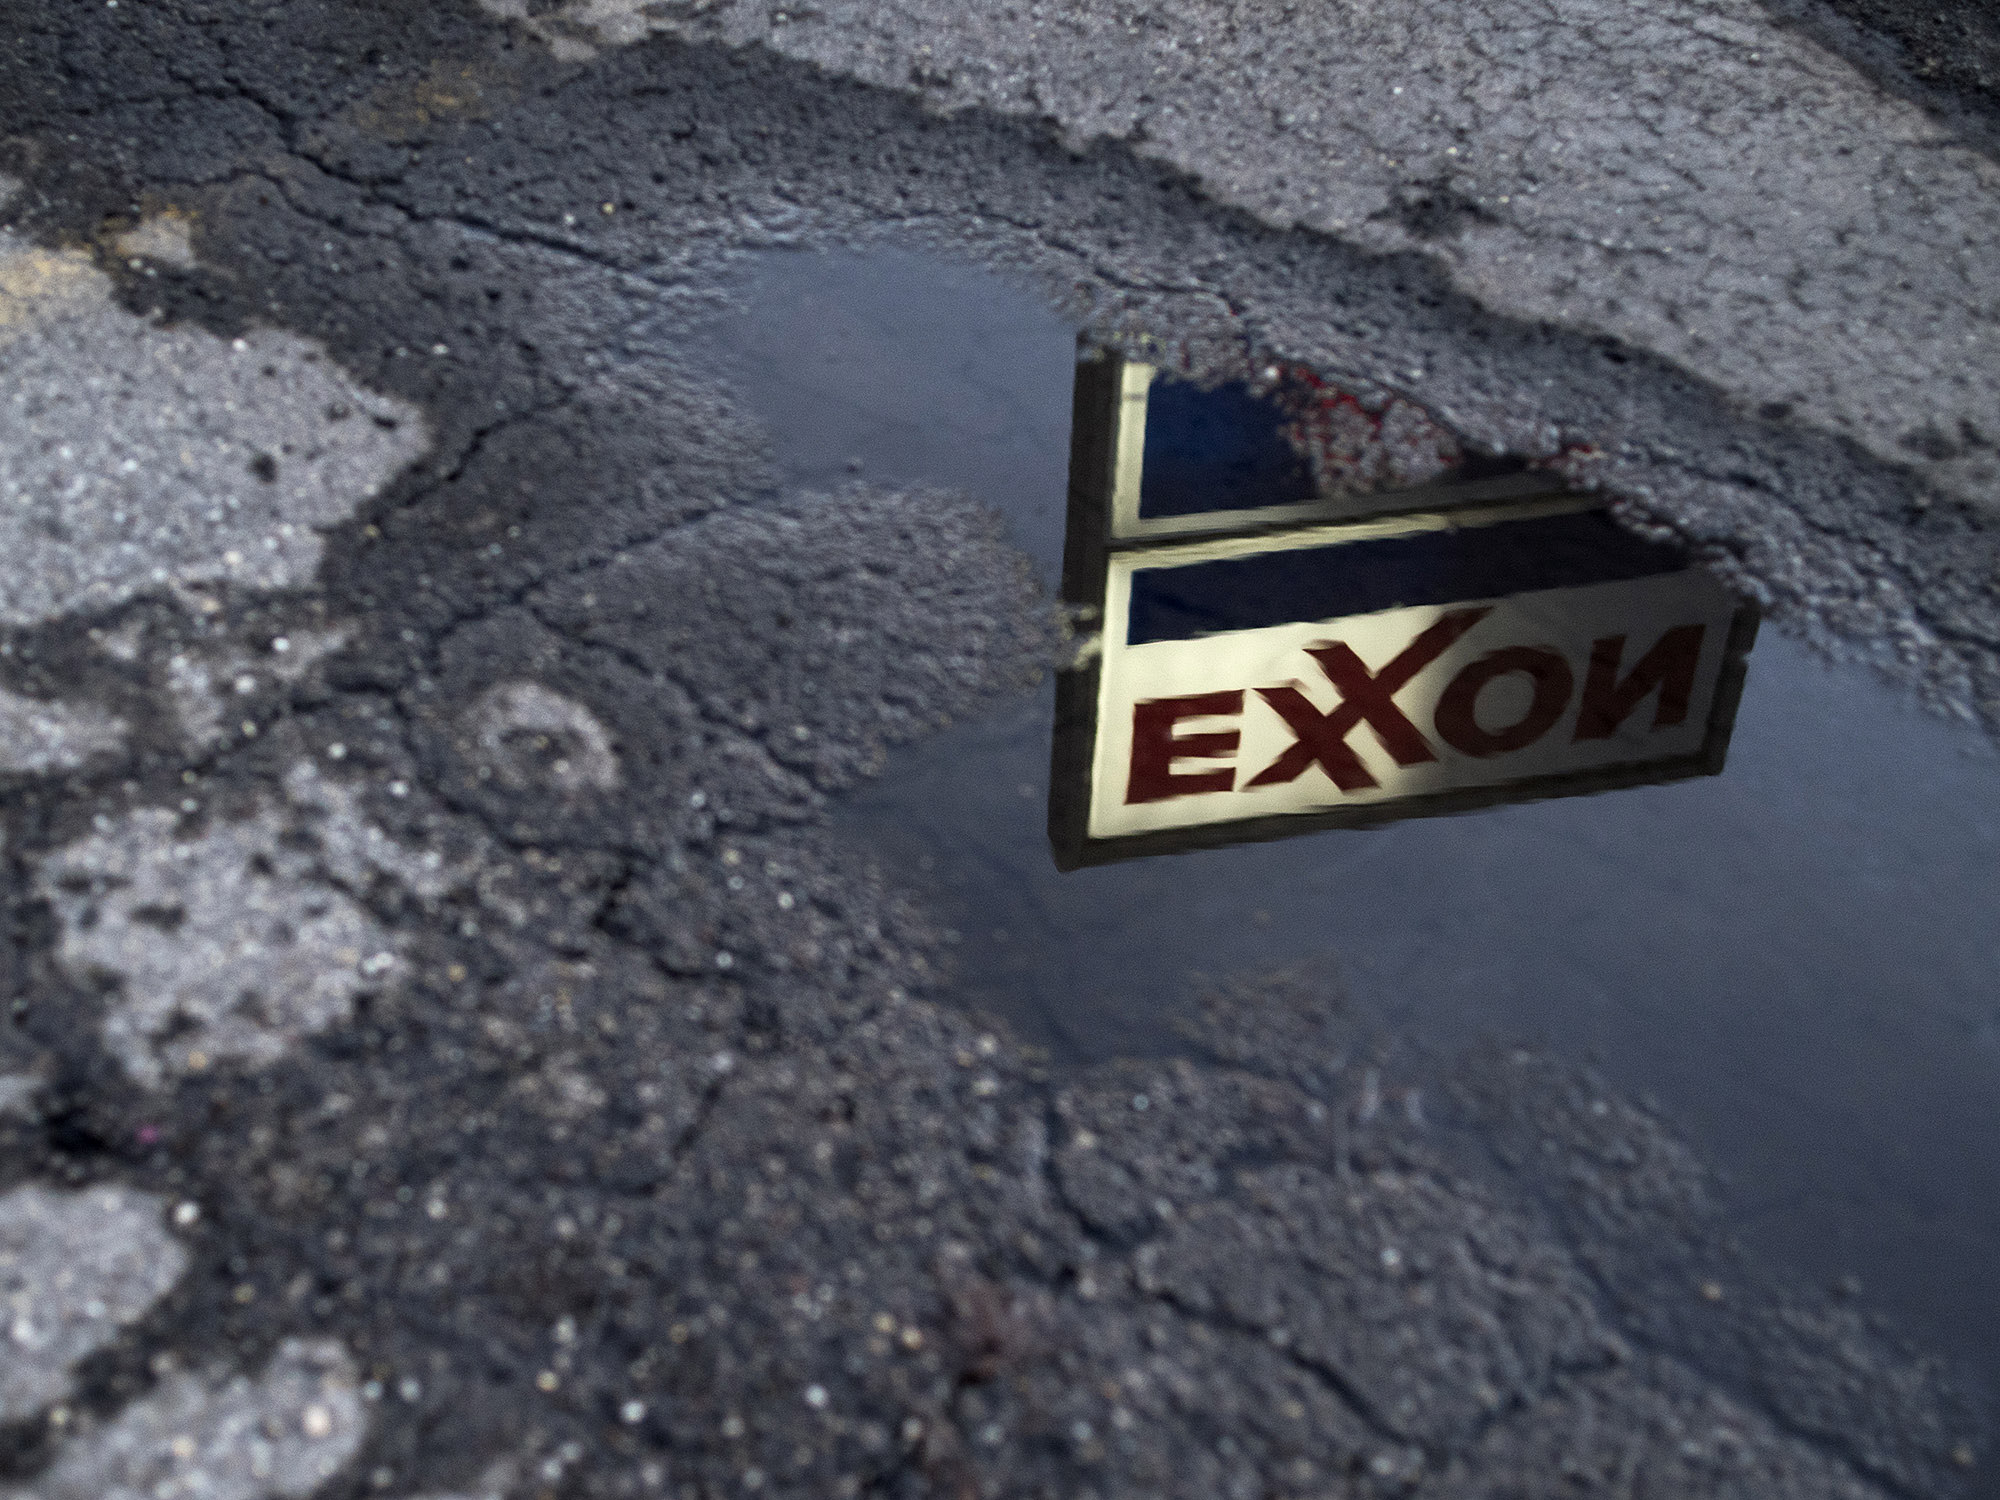 Exxon Mobil Corp. signage is reflected in a puddle at a gas station in Nashport, Ohio.